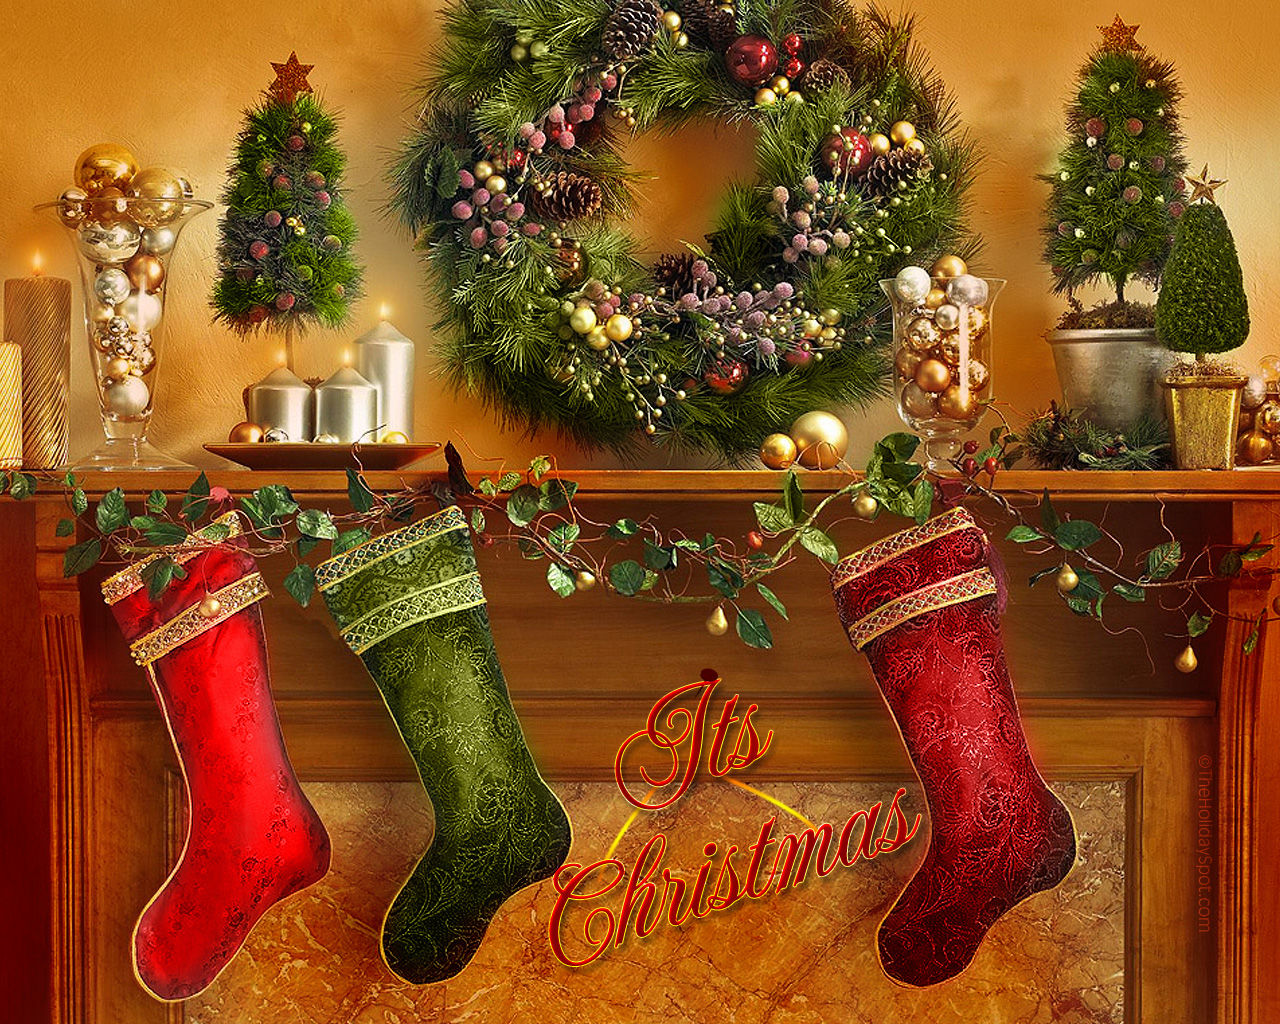 Remarkable Merry Christmas Decorations Pictures 1280 x 1024 · 842 kB · jpeg